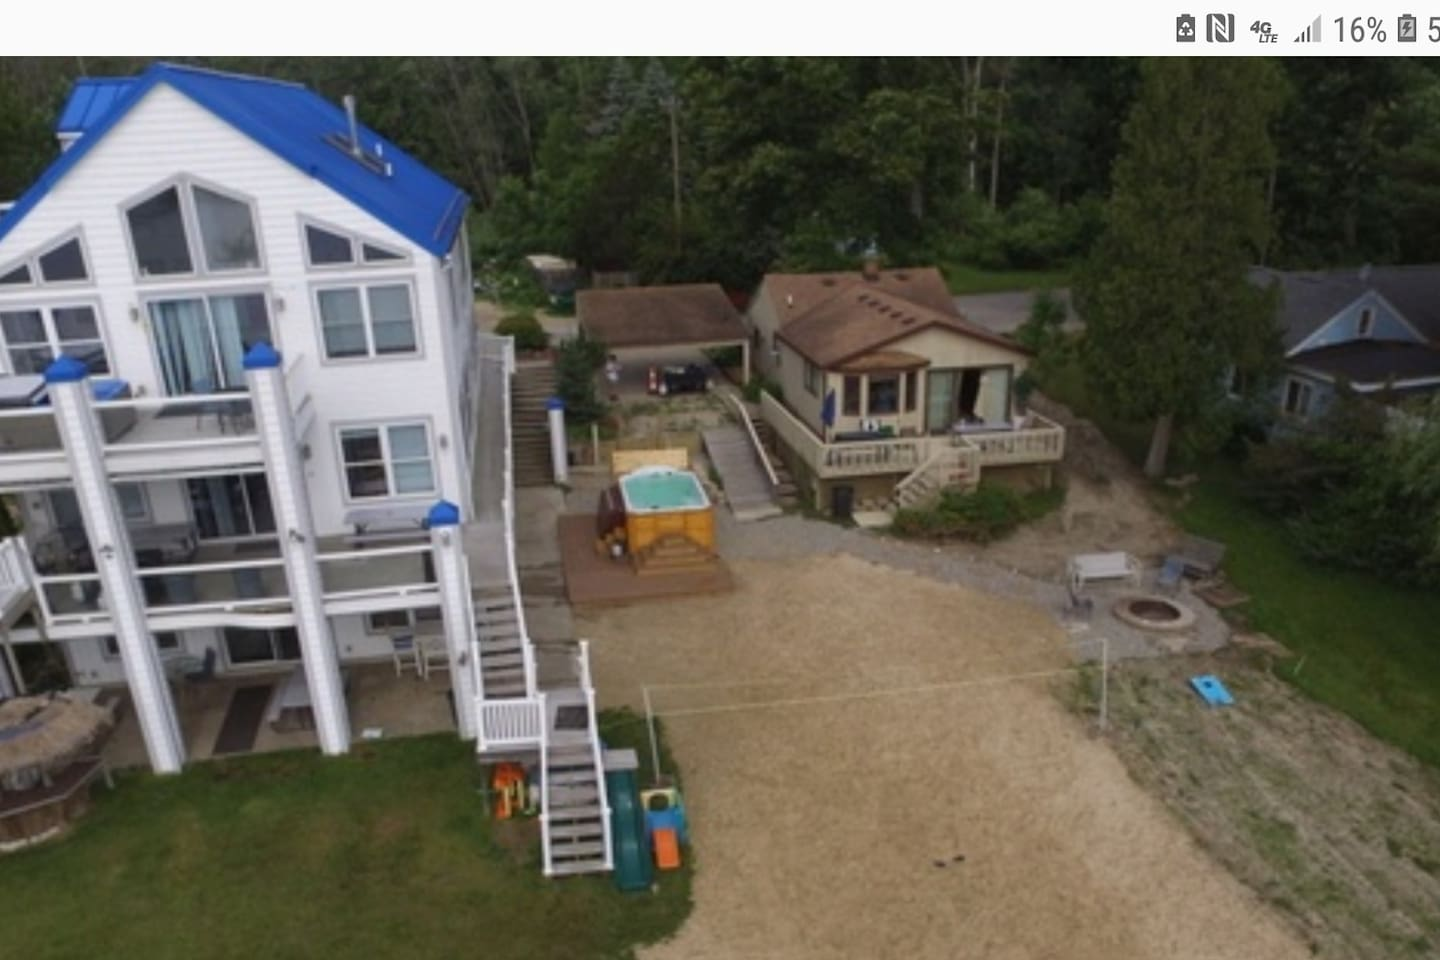 Waterfront Campau Heaven get both homes sleep 59-60 or in this listing the Lower level 15-18 of this 4 story 9  bedroom. Great location  you can jump on the boat or kayak after swimming in the heated swim spa 8 burner grills, volley ball pool table!